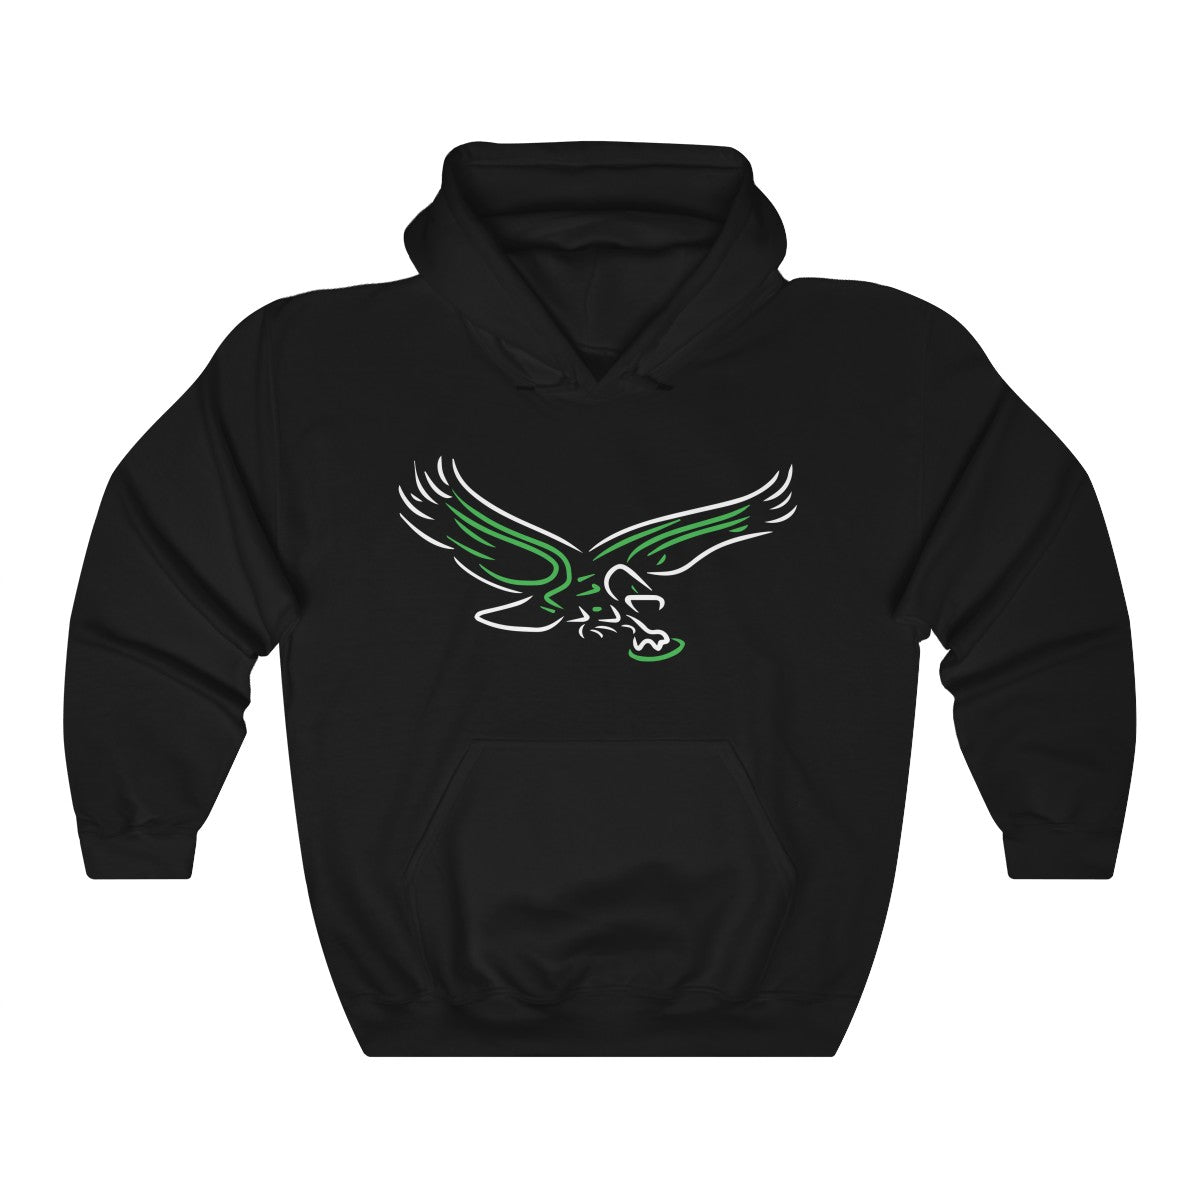 Retro Neon Philly Old School Bird Hooded Sweatshirt